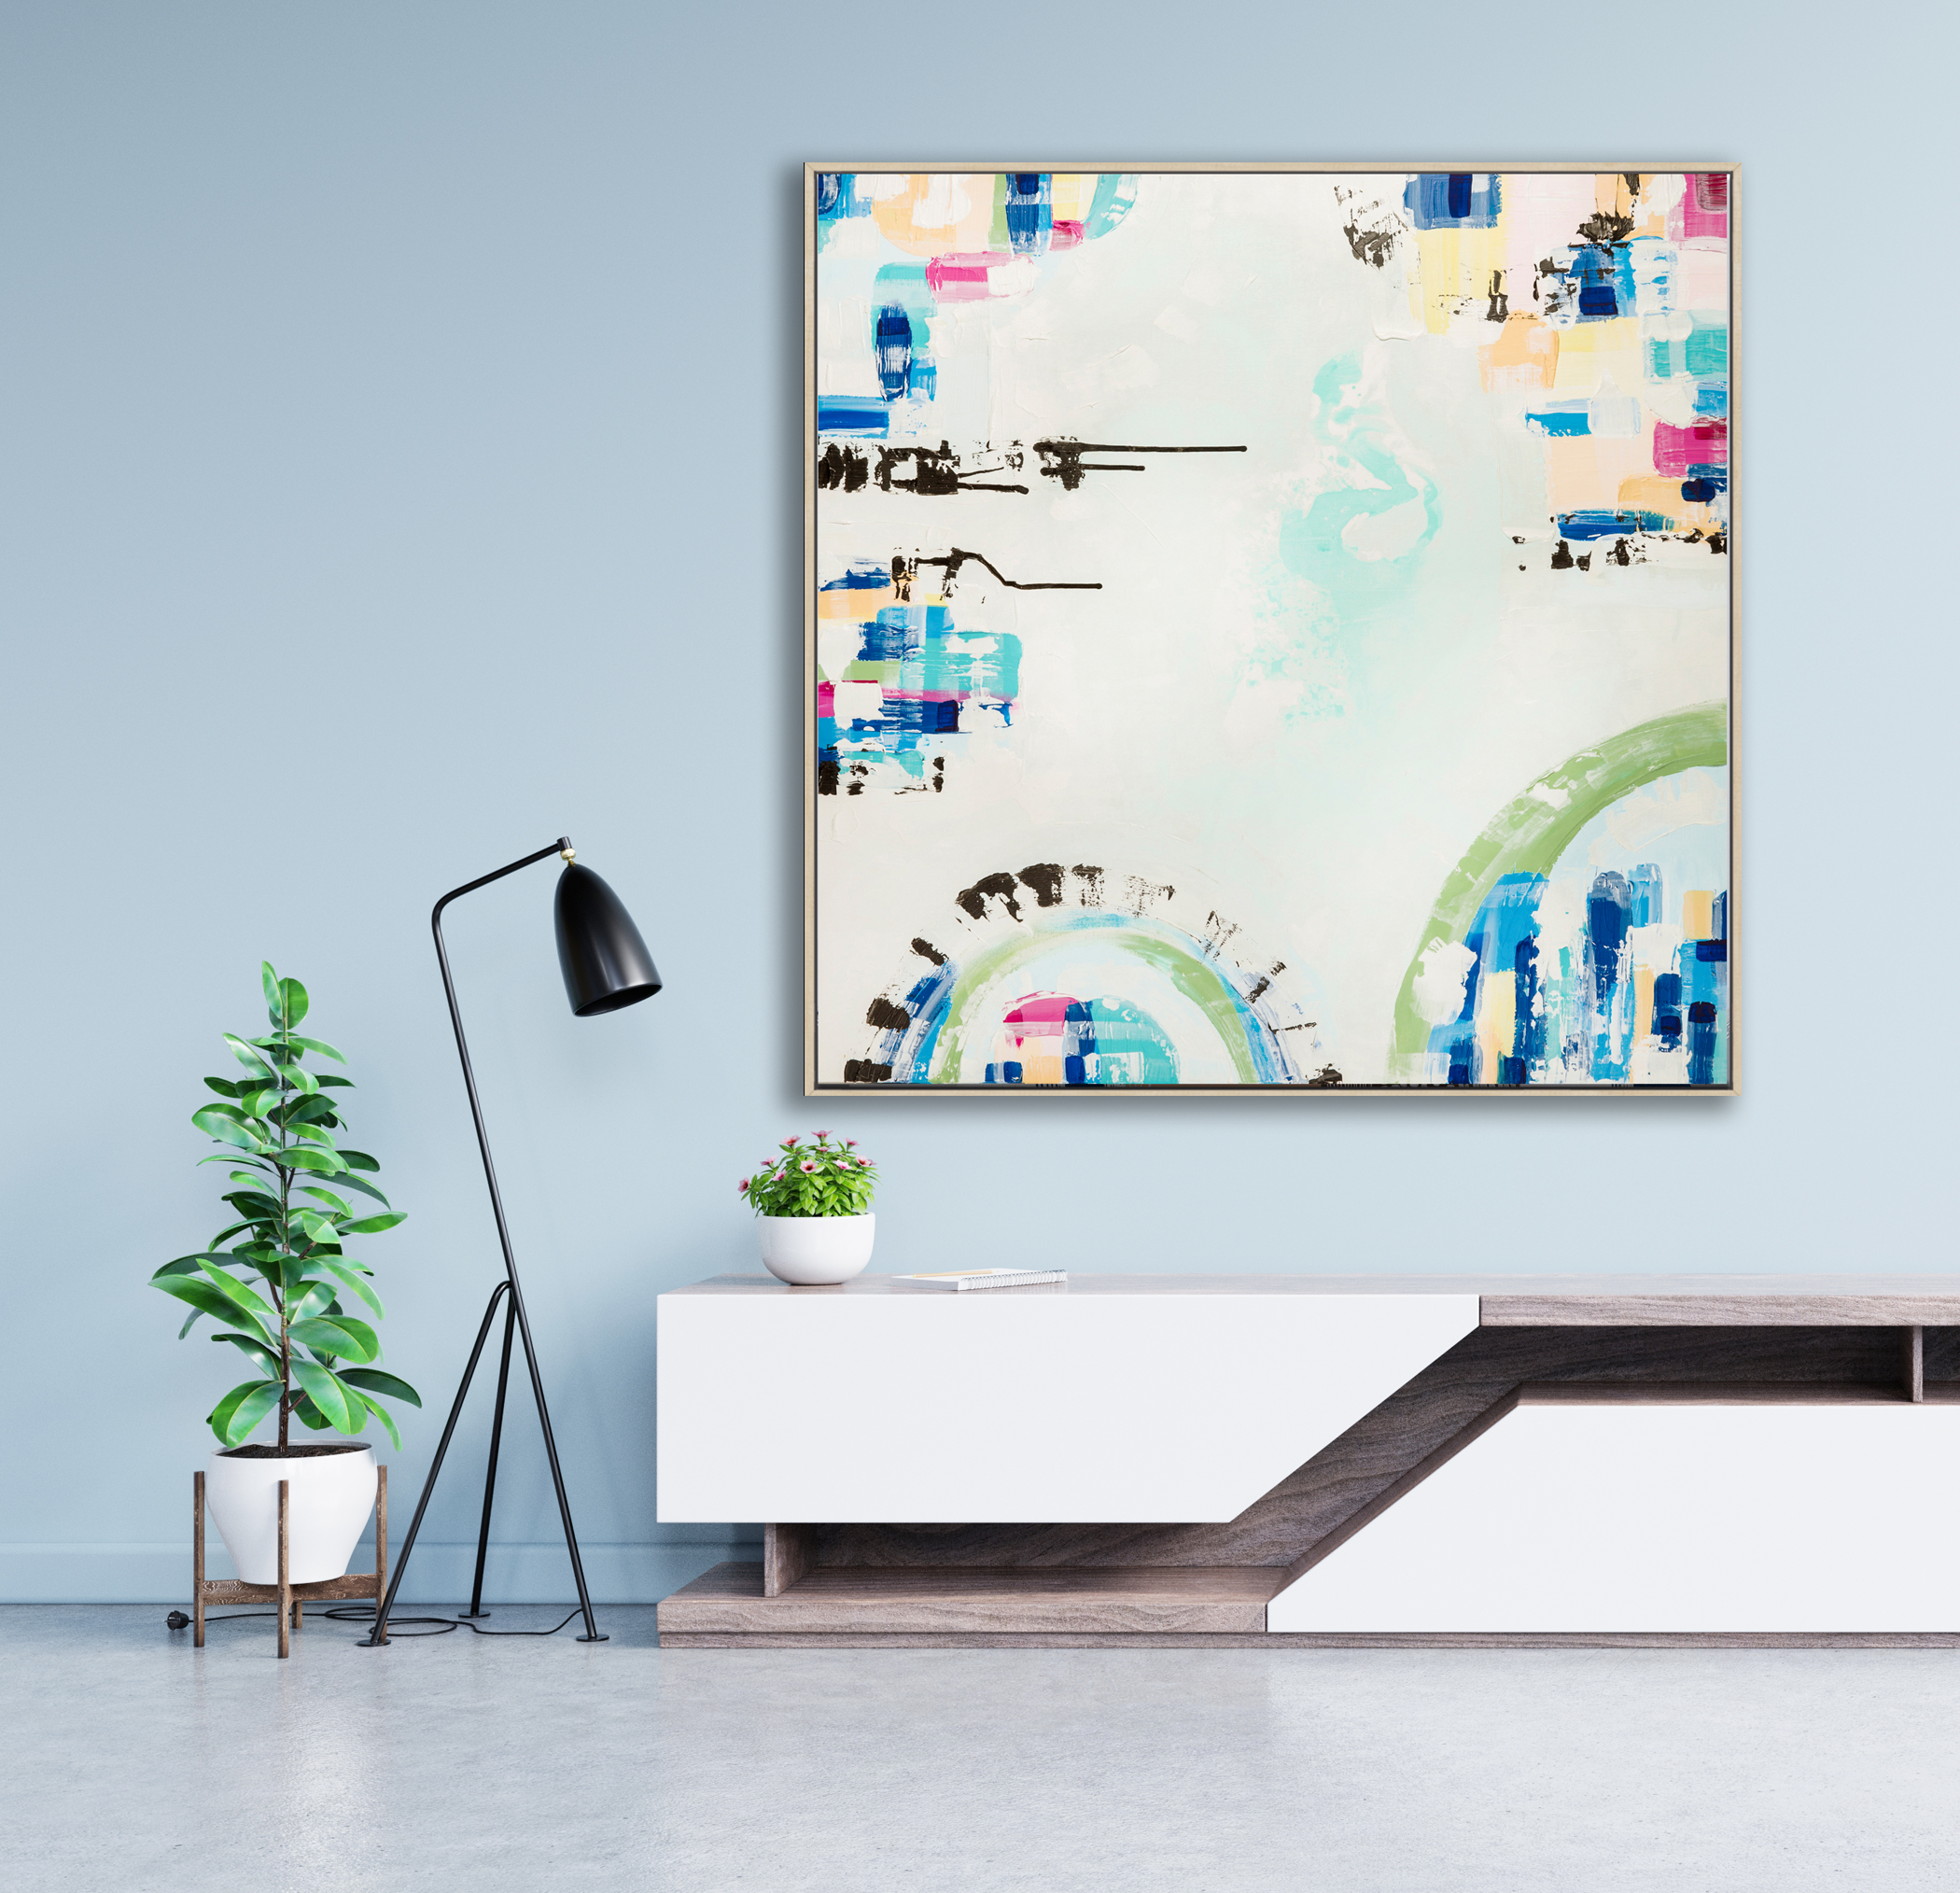 Modern Tv Stand Design With Blue Wall With Decoration.